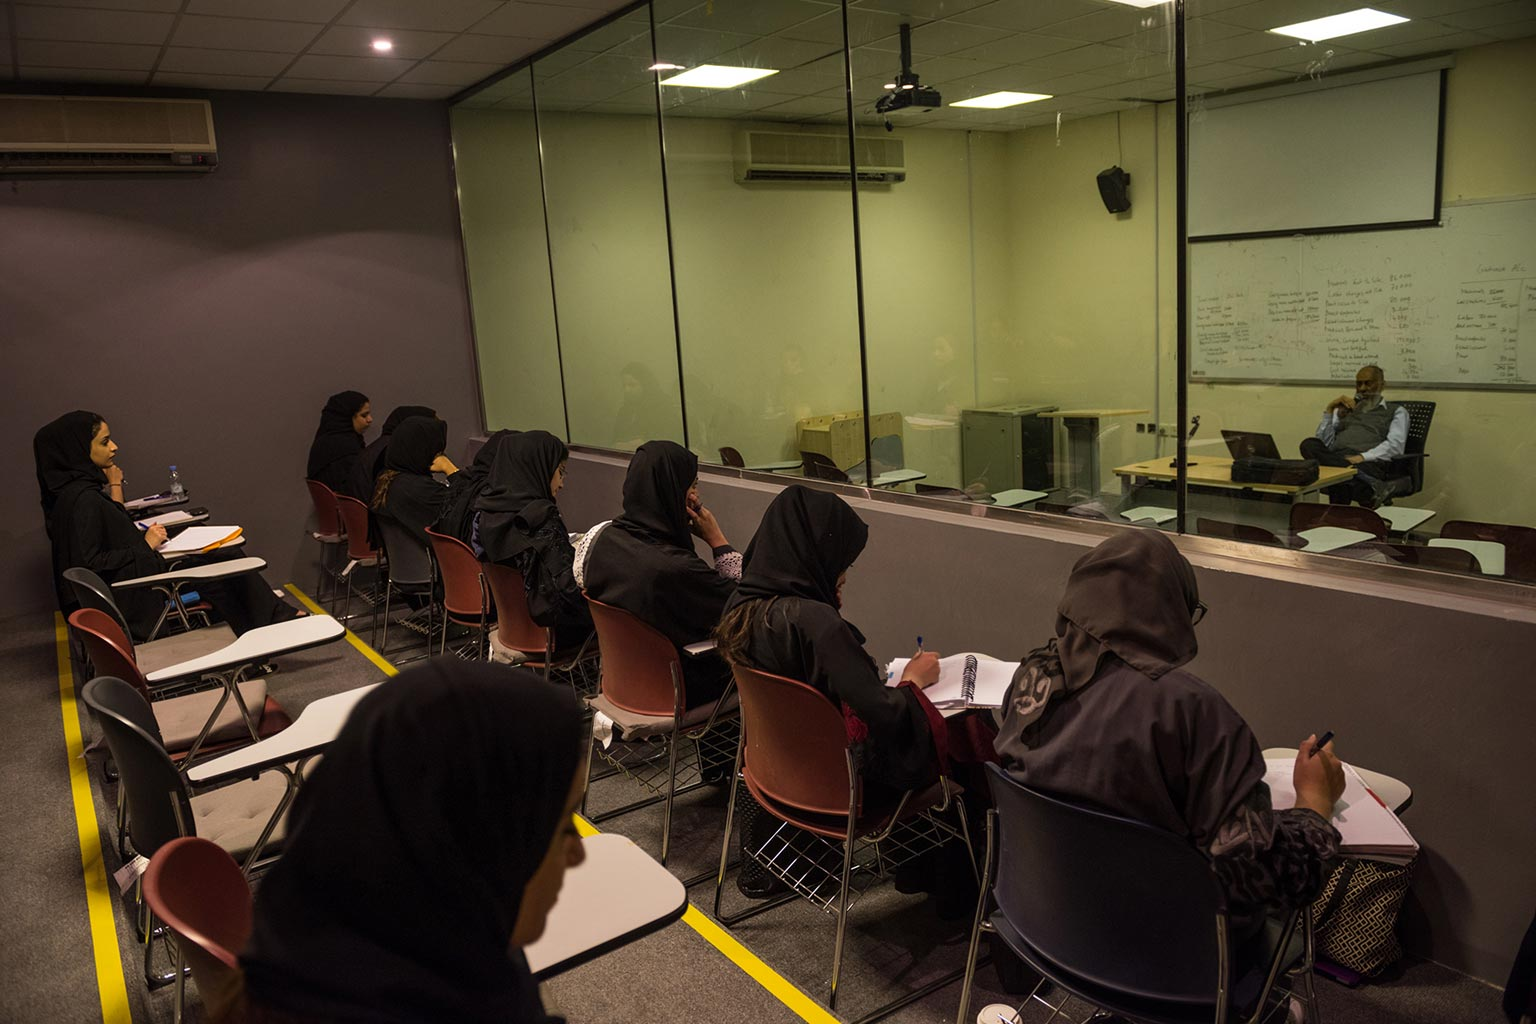 English Language Schools Are Gaining Popularity in Saudi Arabia